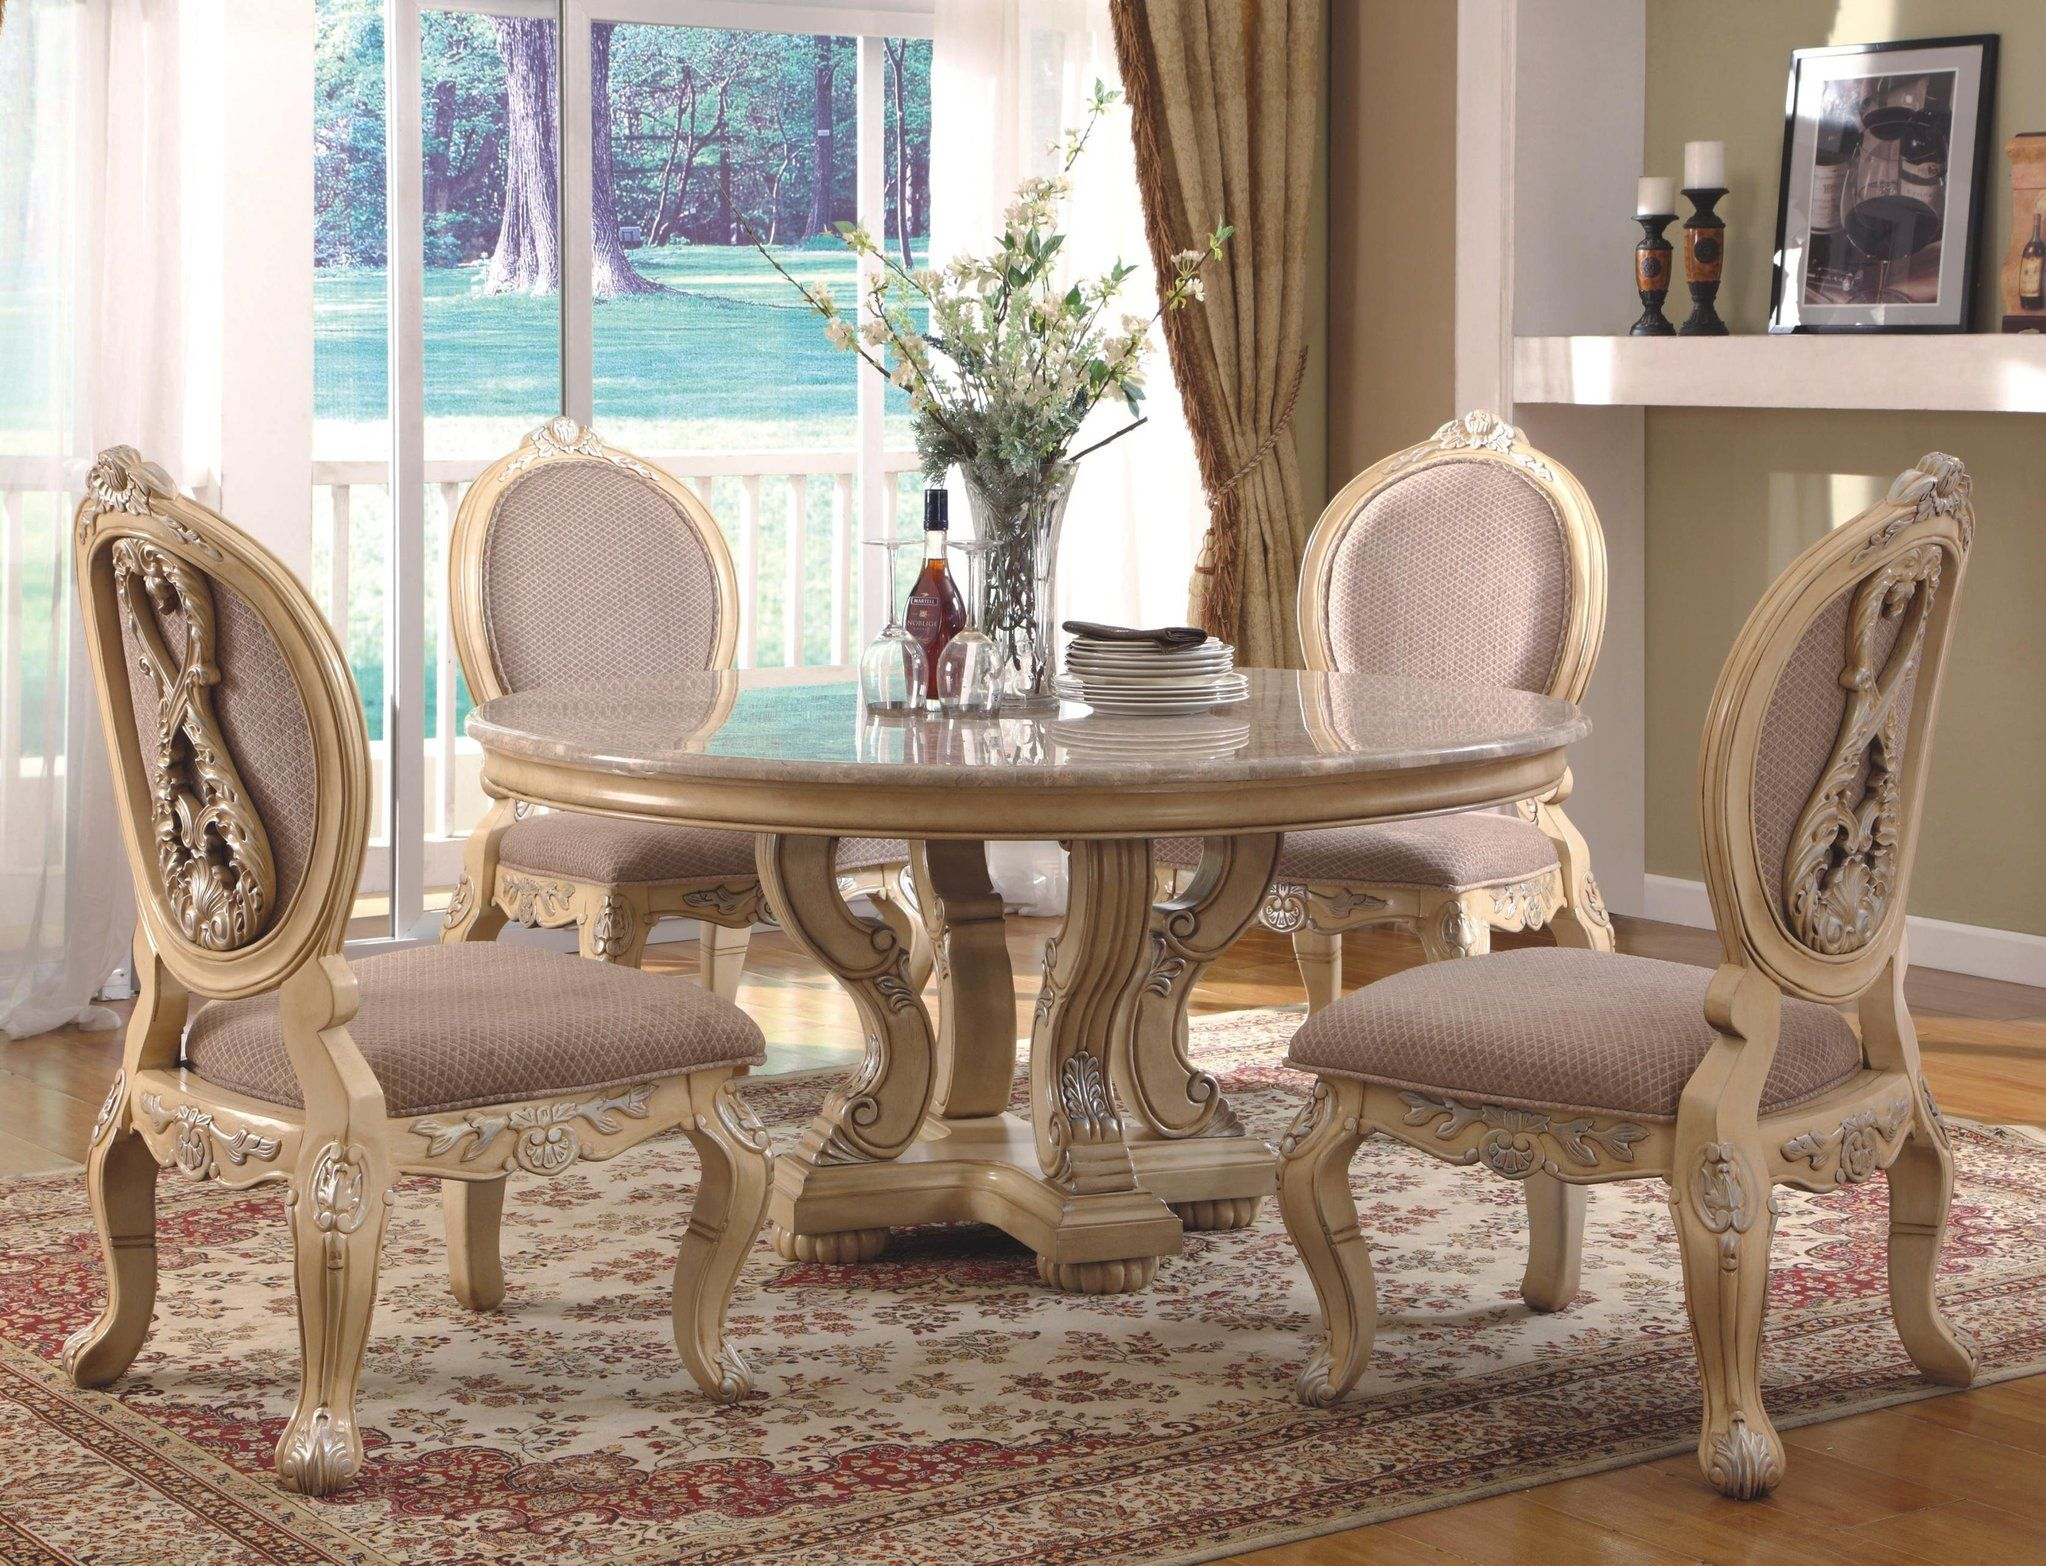 White Dining Furnishings Traditional Antique White Dining Room Set With Round Table Round Dining Table Sets Round Dining Room Table White Round Dining Table